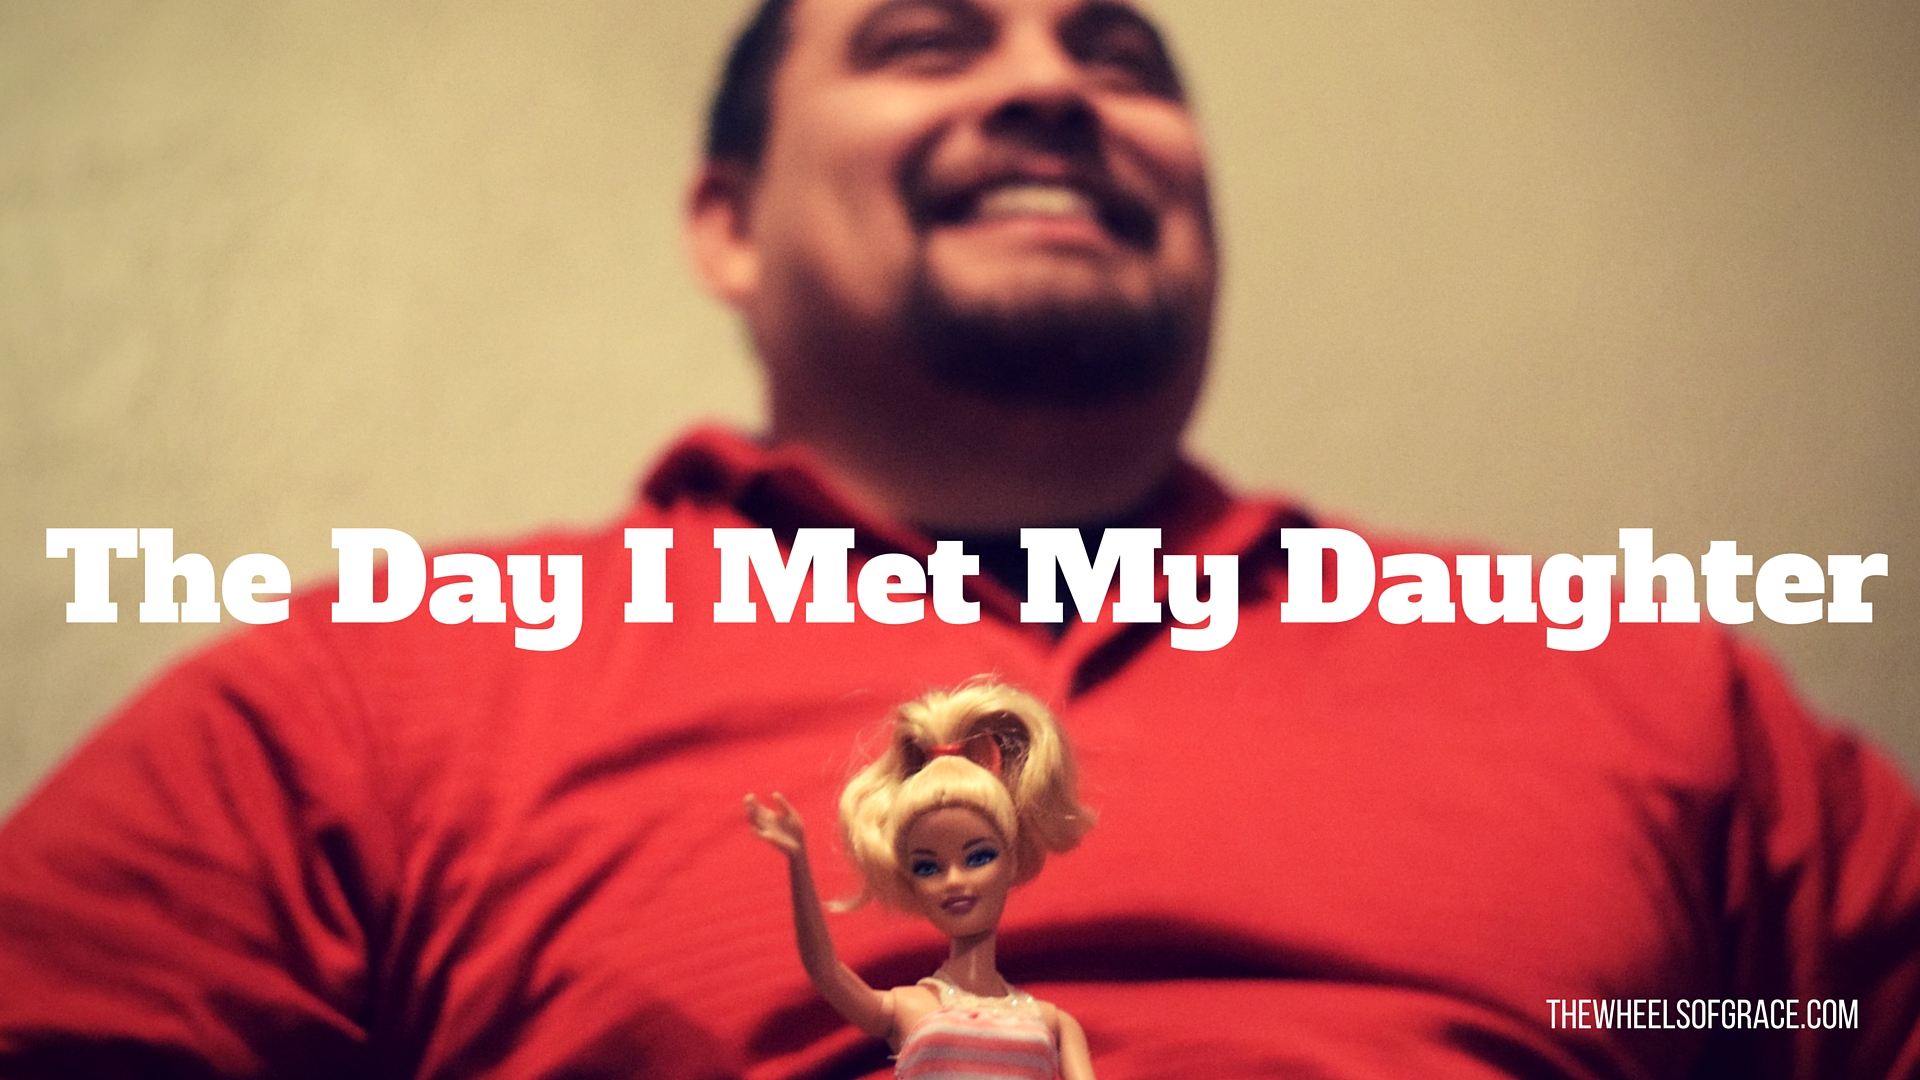 The Day I Met My Daughter